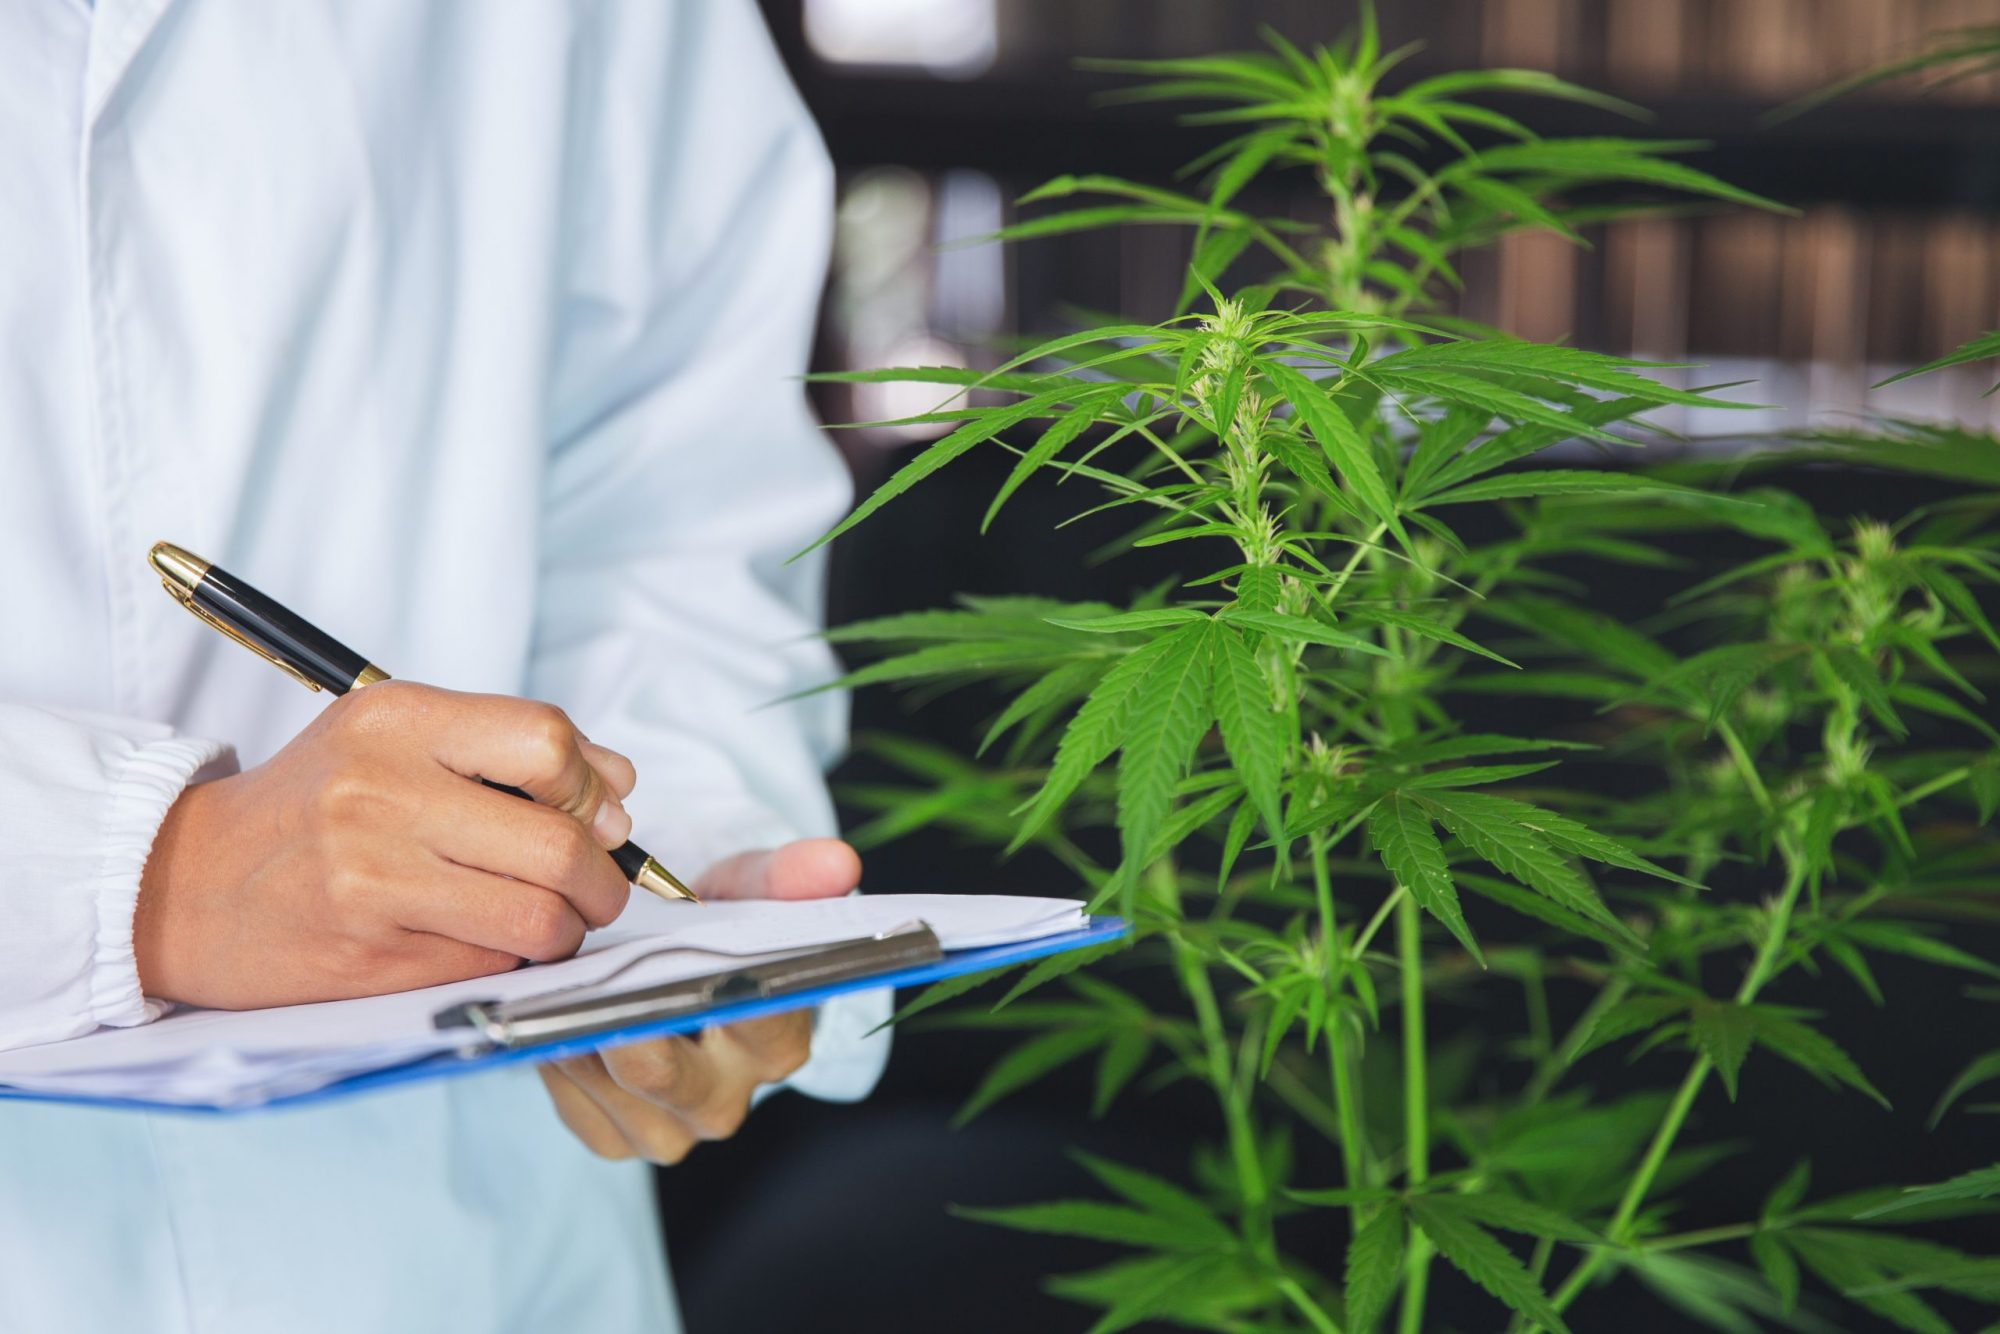 Technical Writing And Establishment of Audit And Inspection Programs For Cannabis